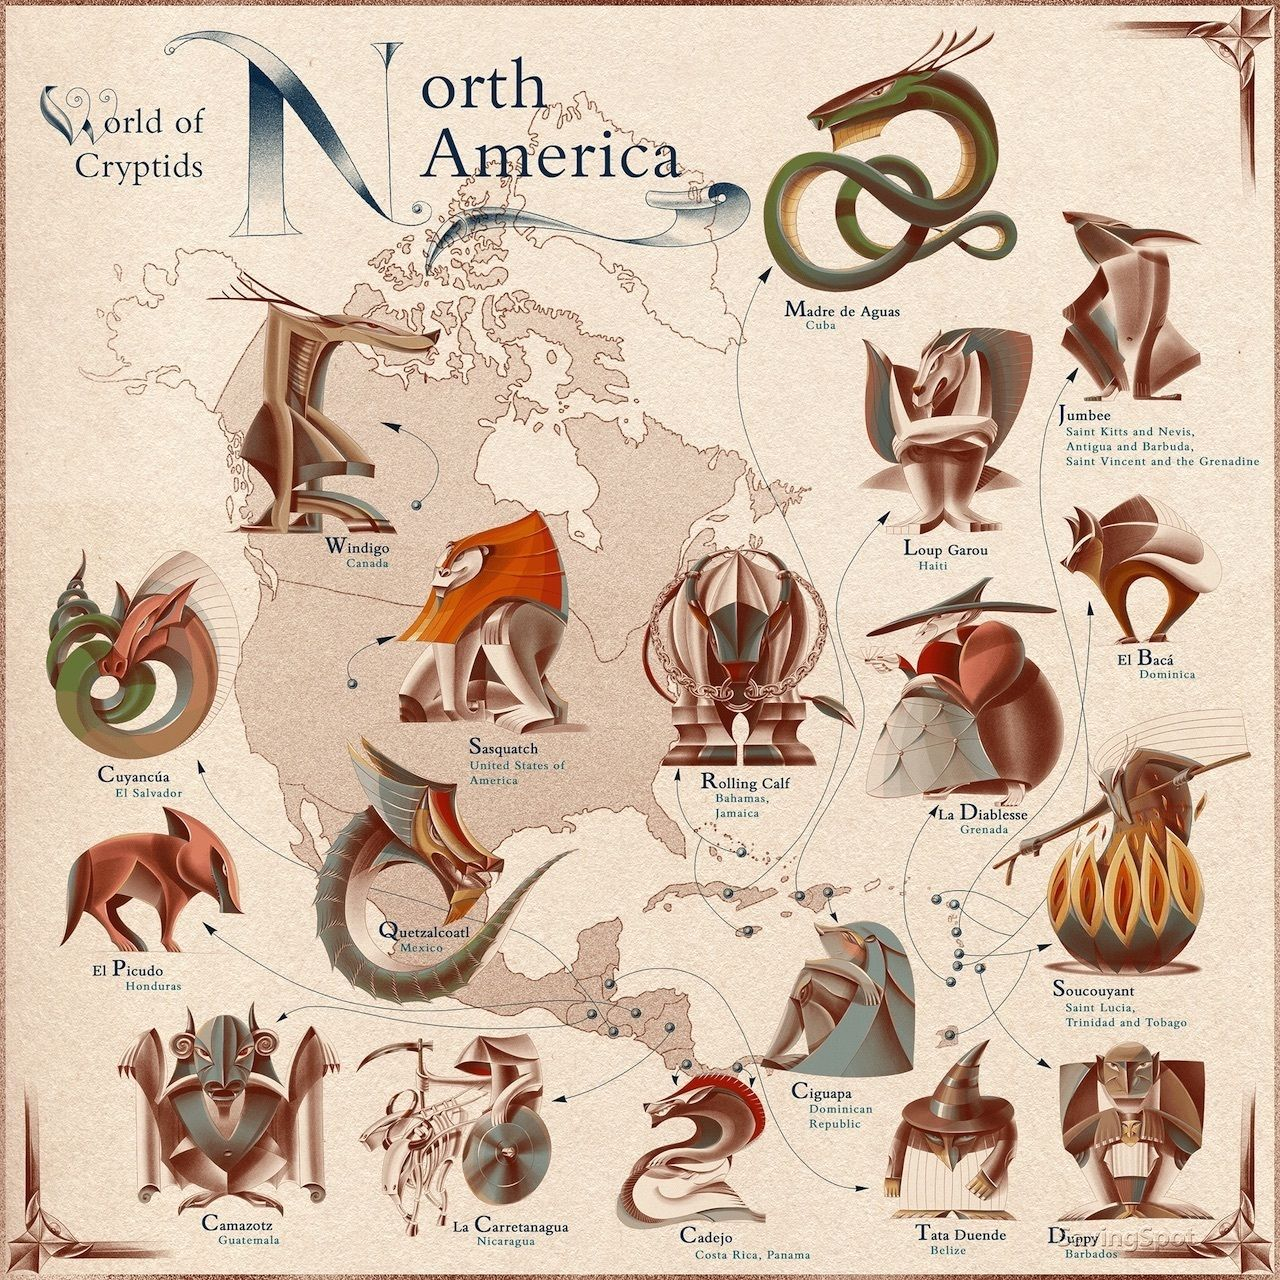 Mythical Creatures of North America